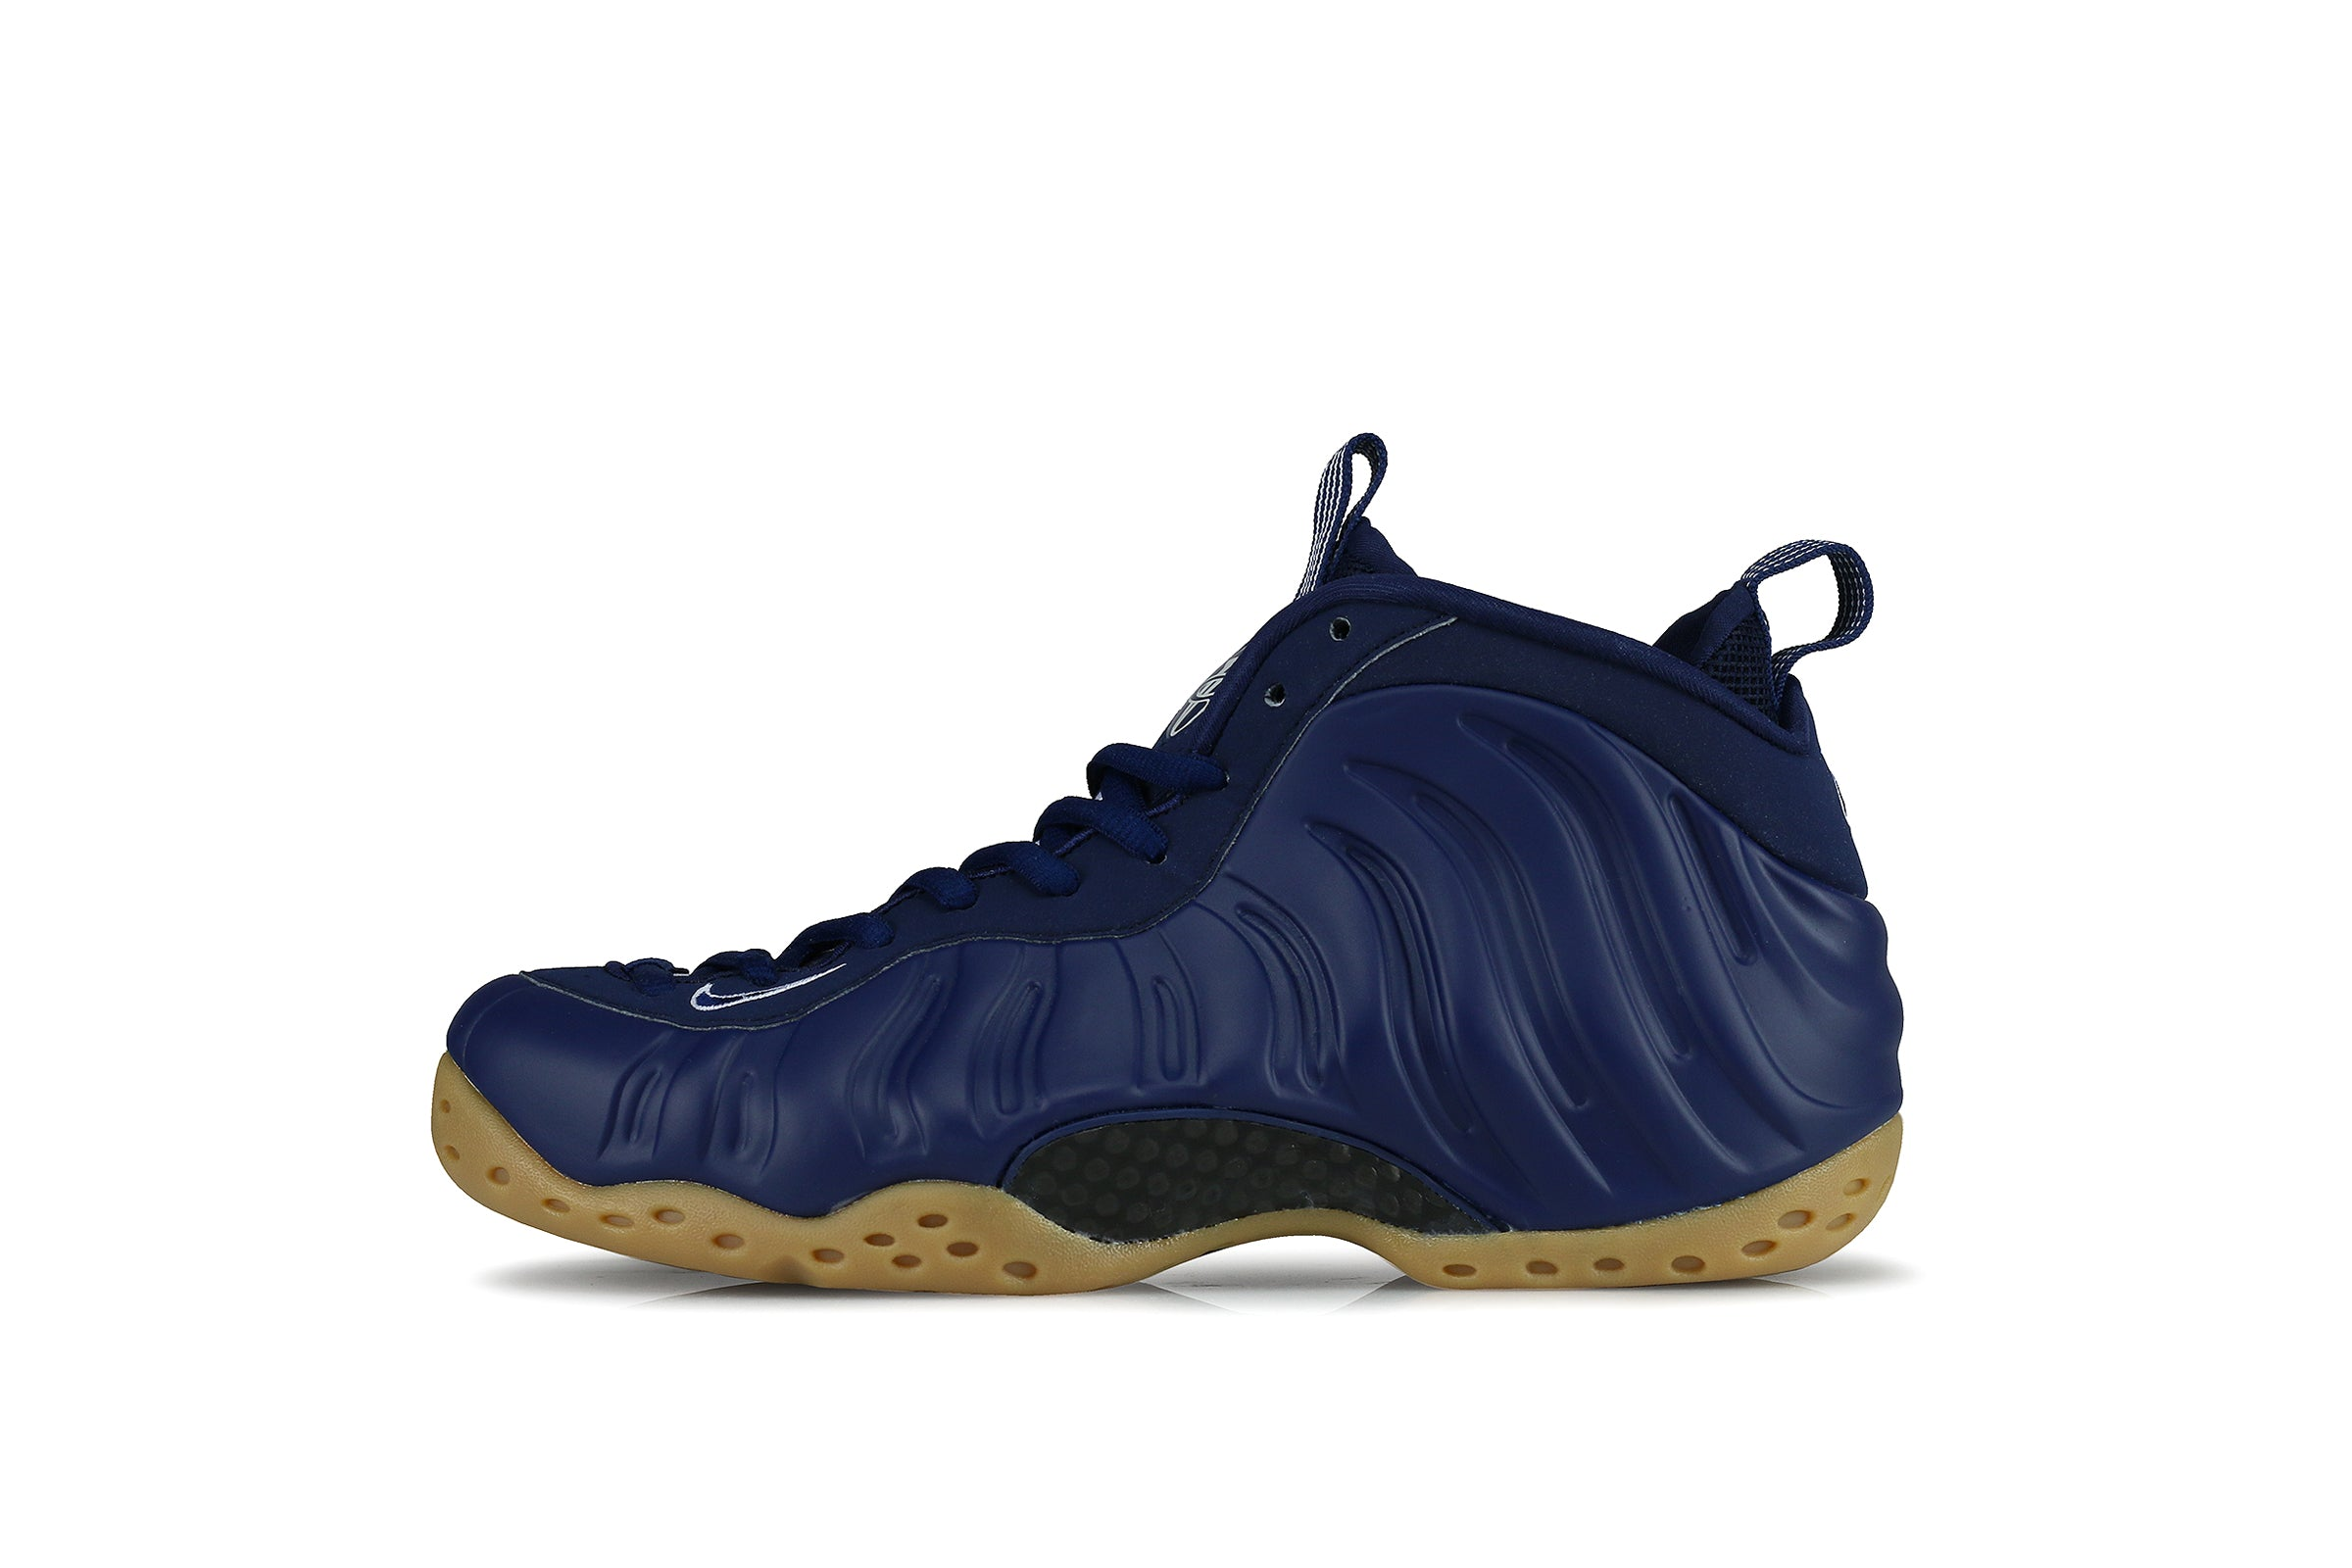 hot sale online 4dc7e e27f2 Nike Air Foamposite One